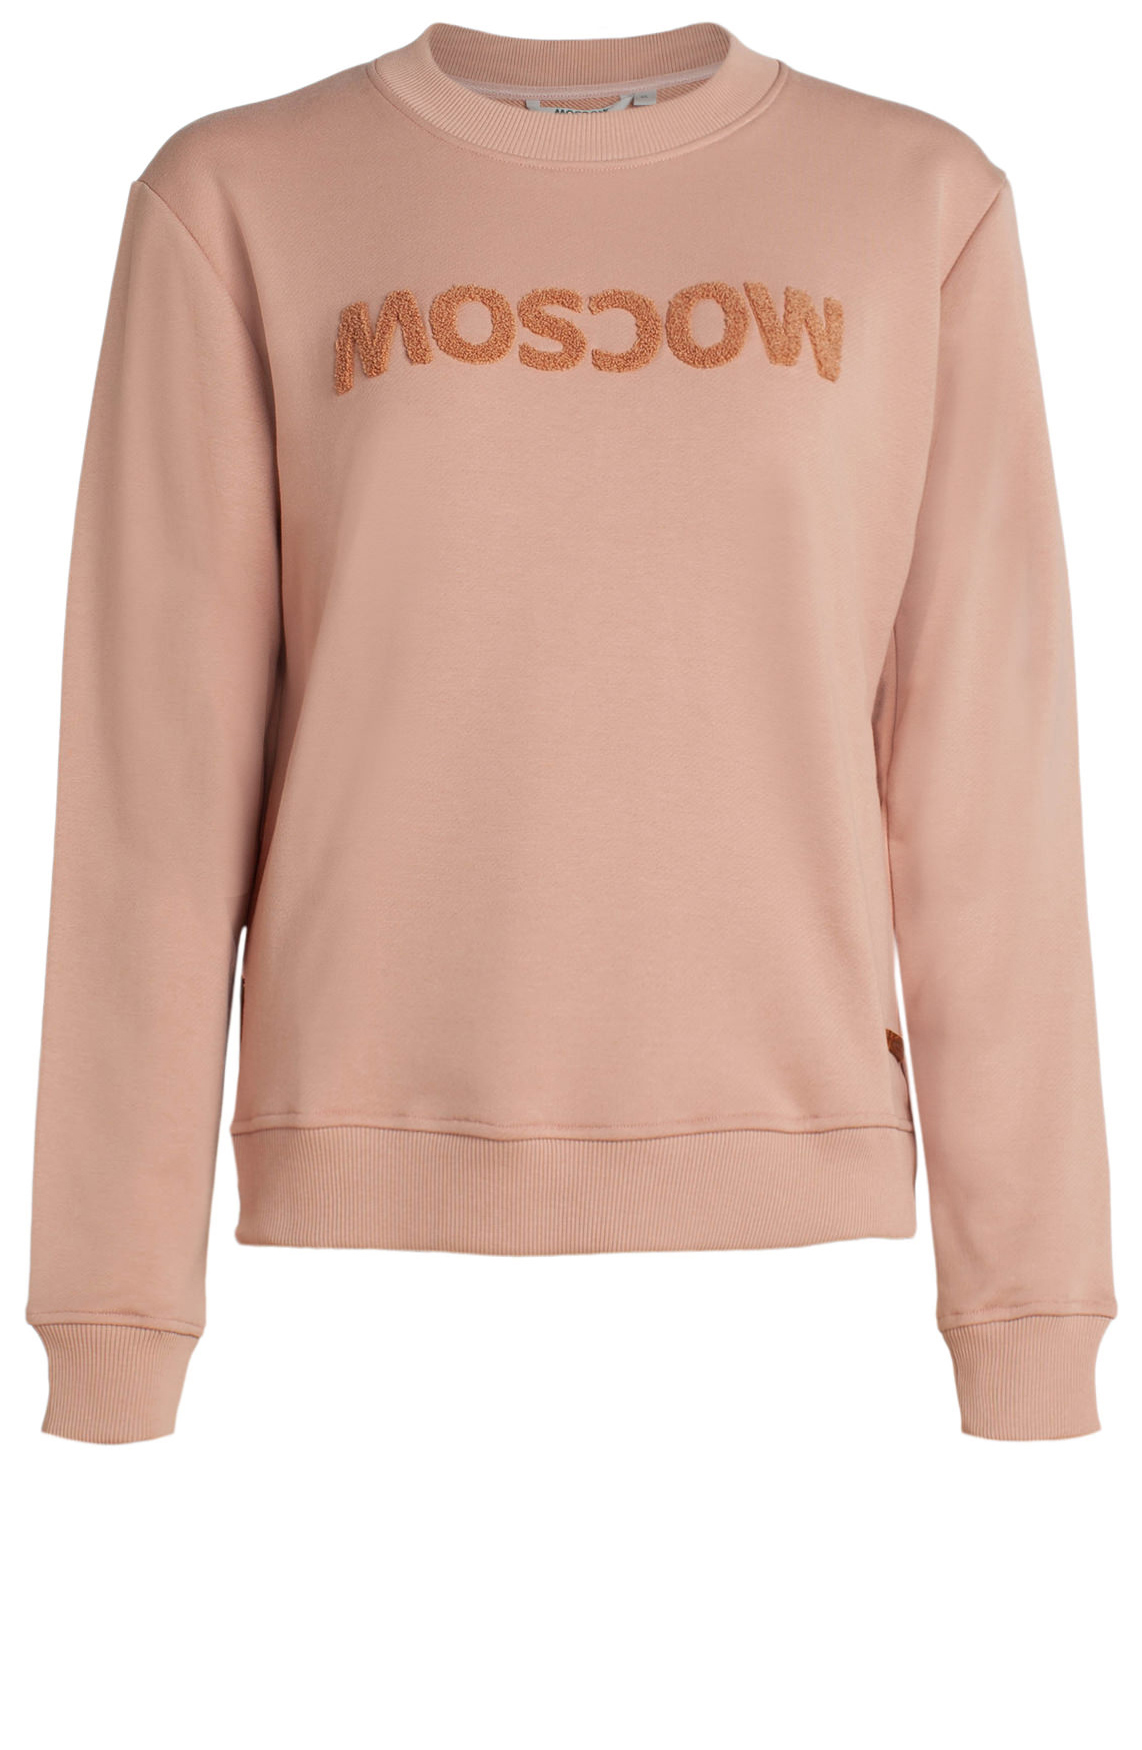 Moscow Dames Sweater with Moscow logo roze